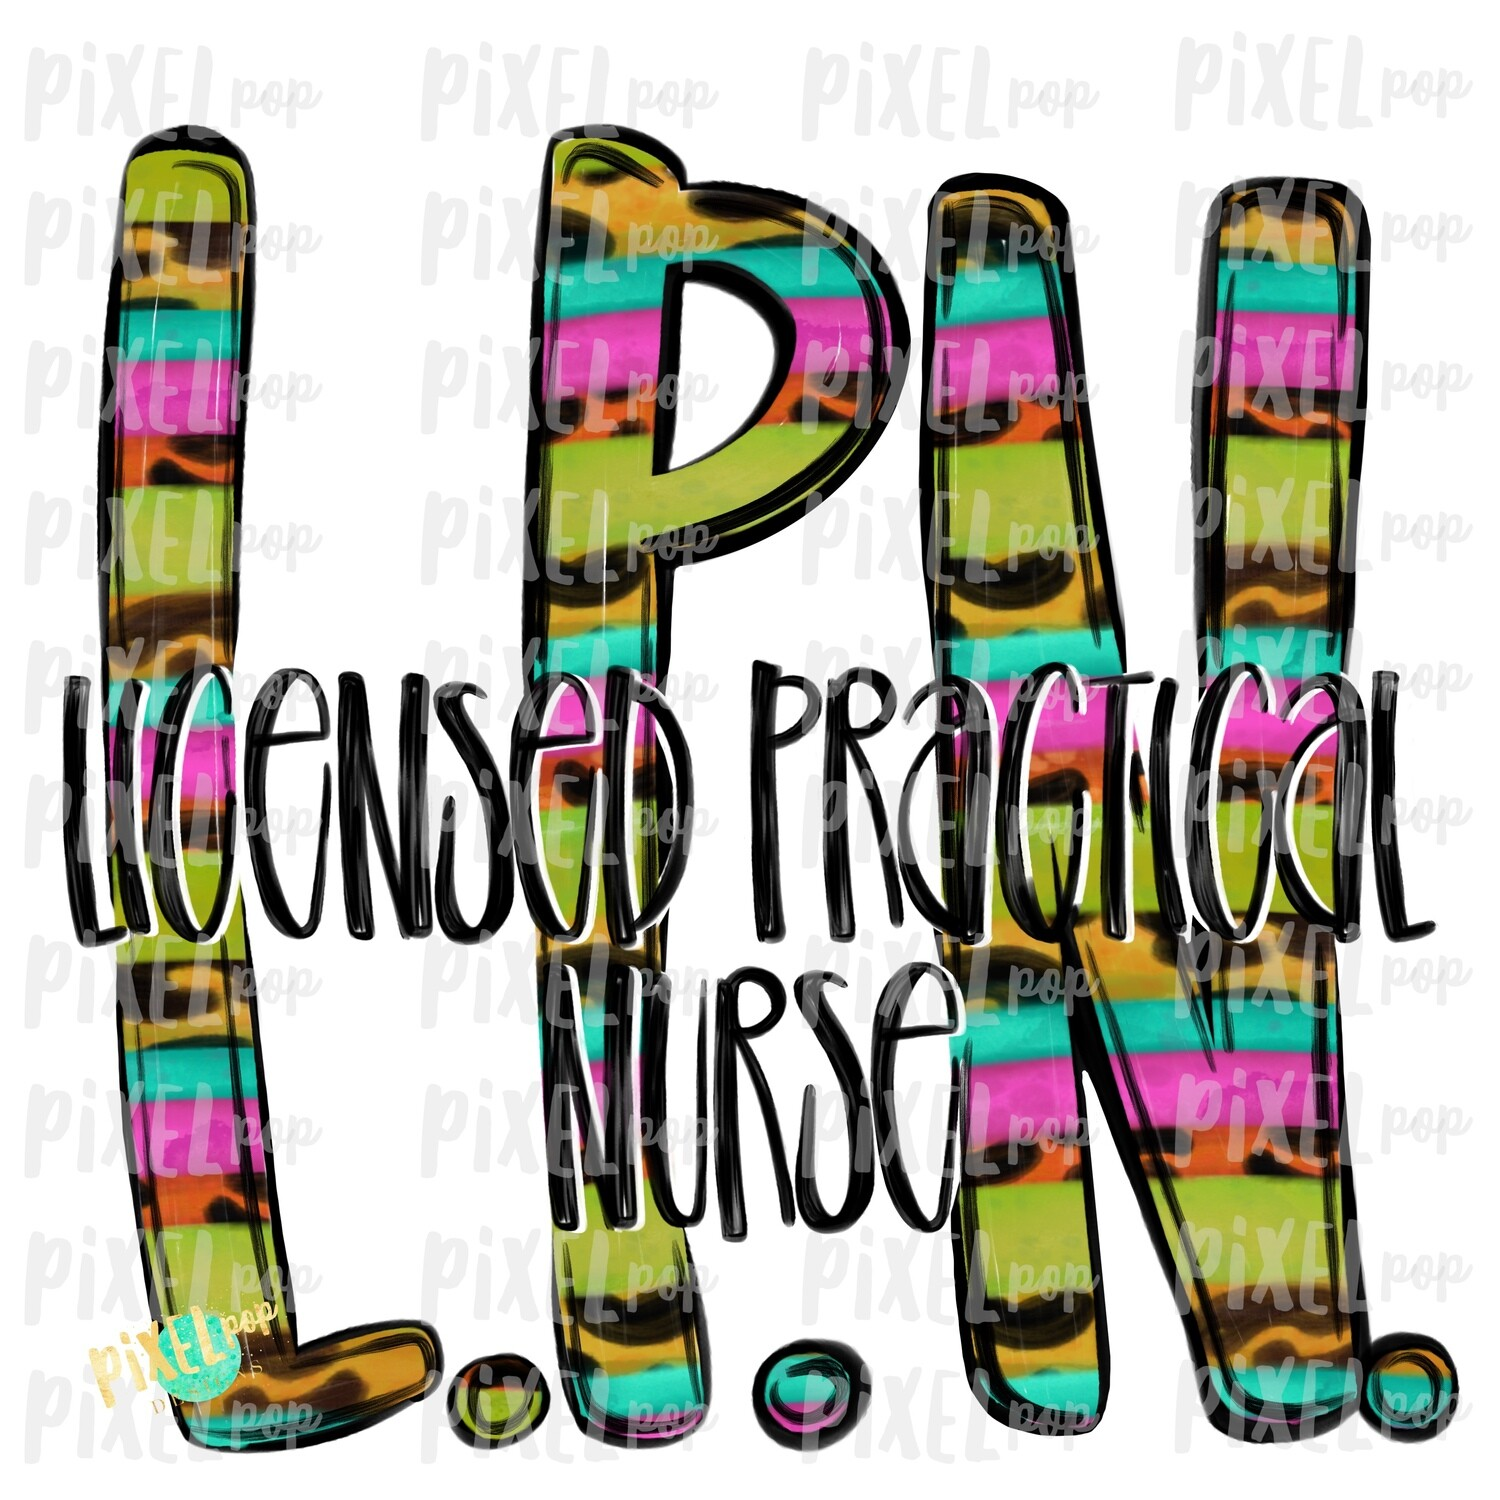 Licensed Practical Nurse LPN BRIGHT PNG Design | Sublimation | Hand Drawn Art | Nursing PNG | Medical Clipart | Digital Download | Art